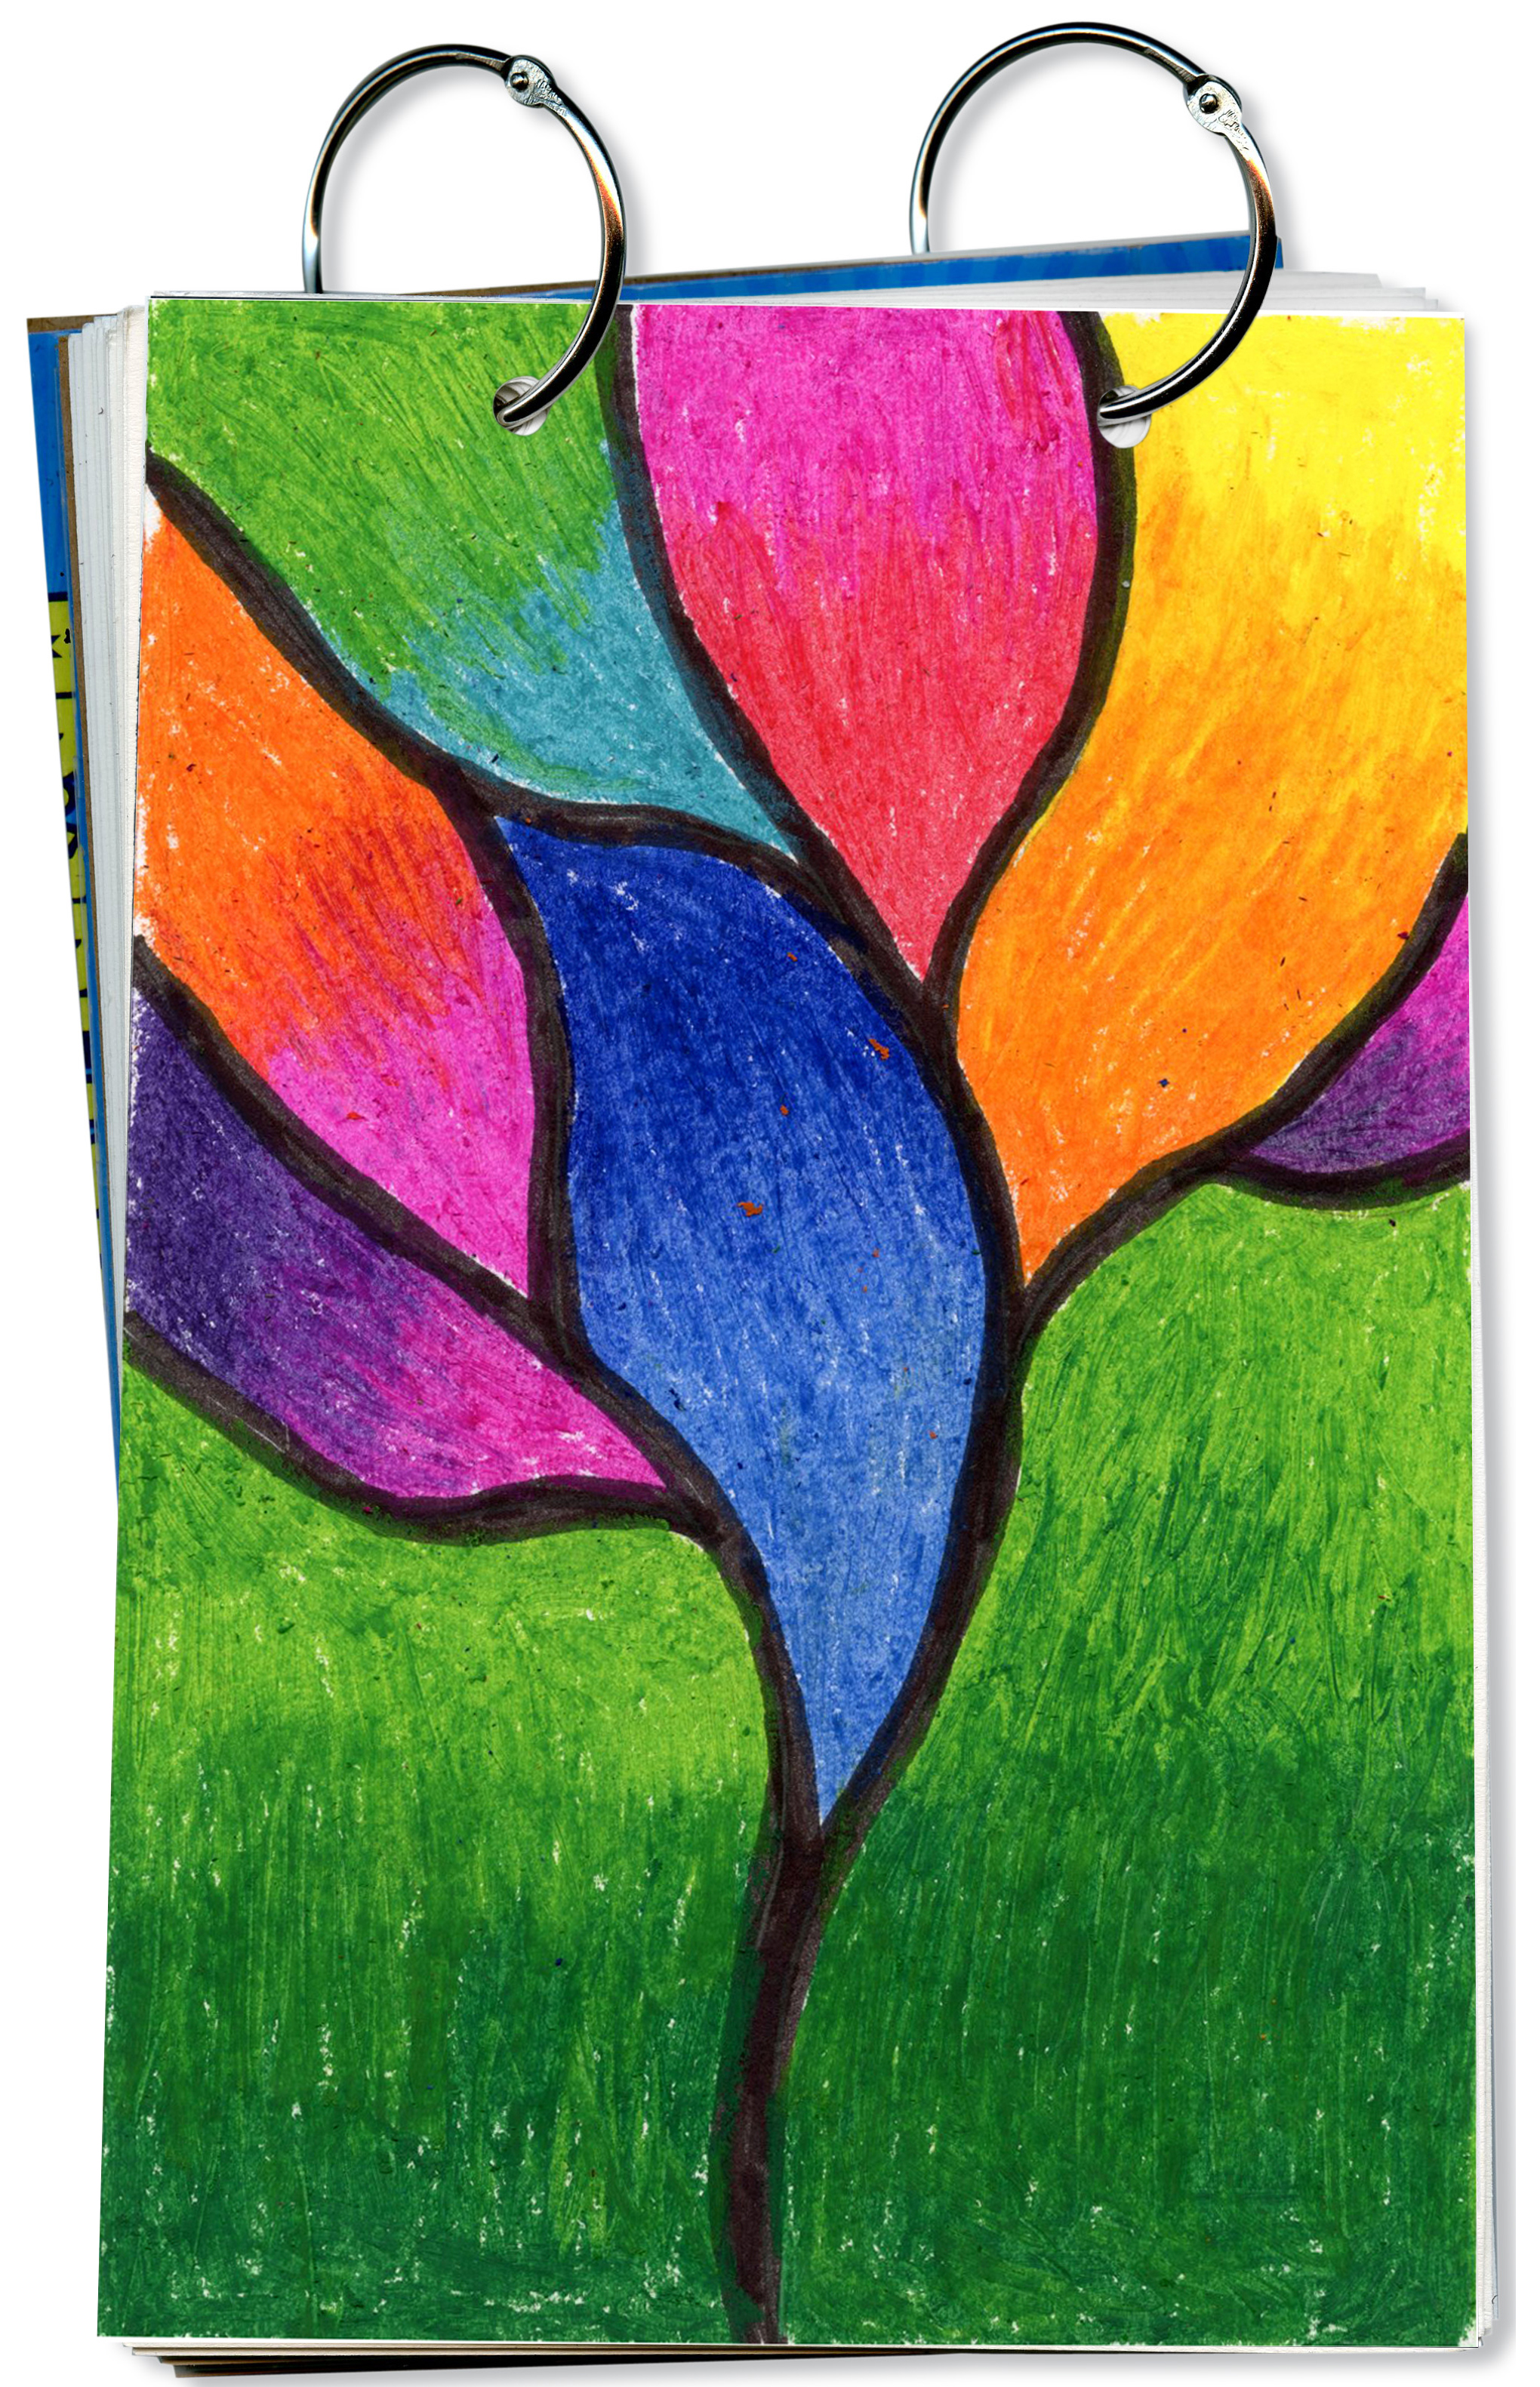 How To Blend Colors Art Projects For Kids